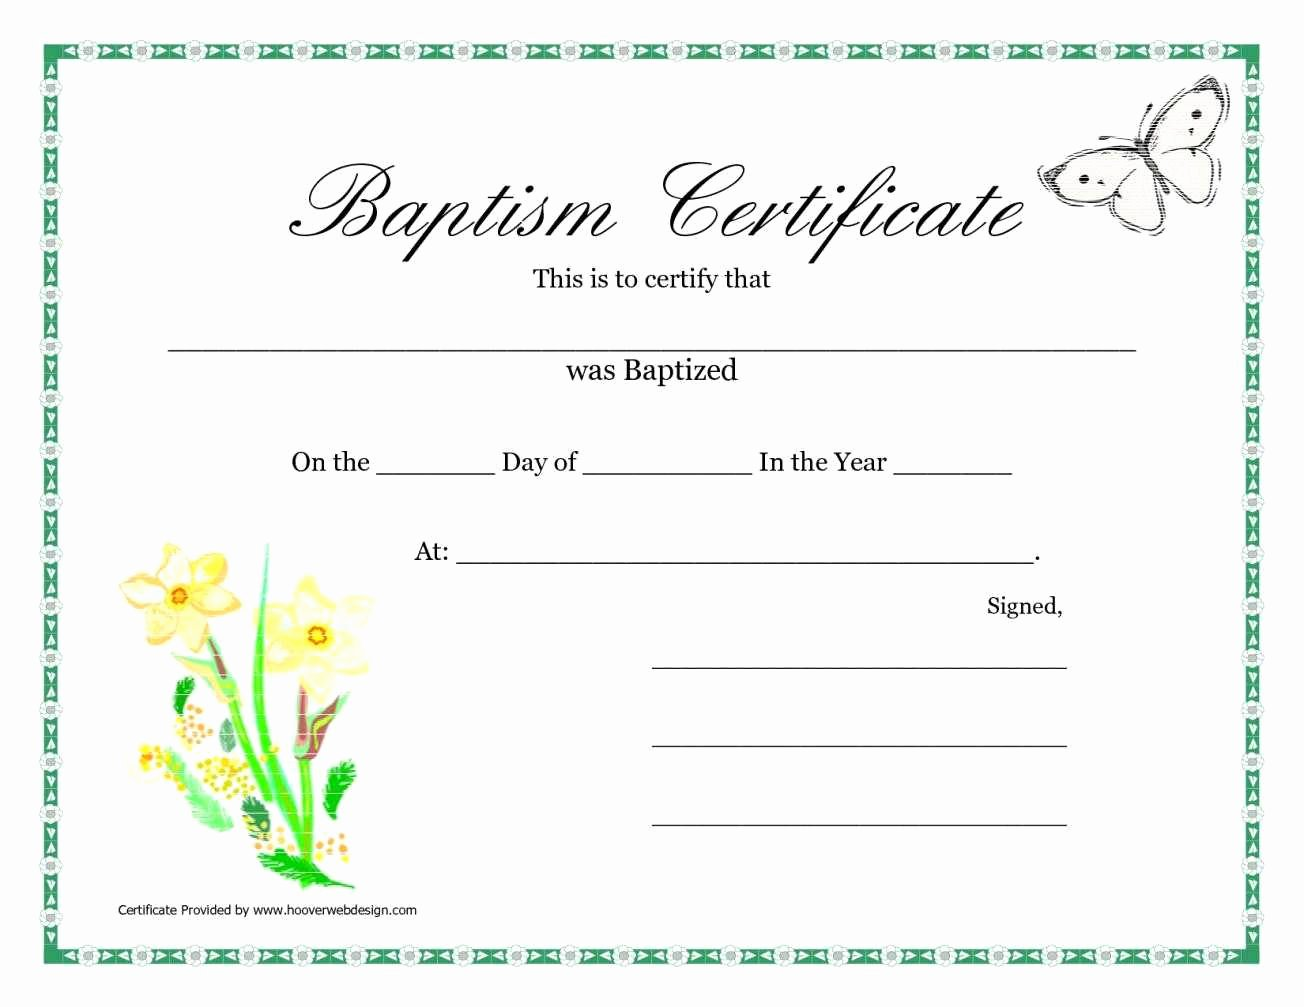 Certificate Of Baptism Template Awesome Sample Baptism Certificate Templates